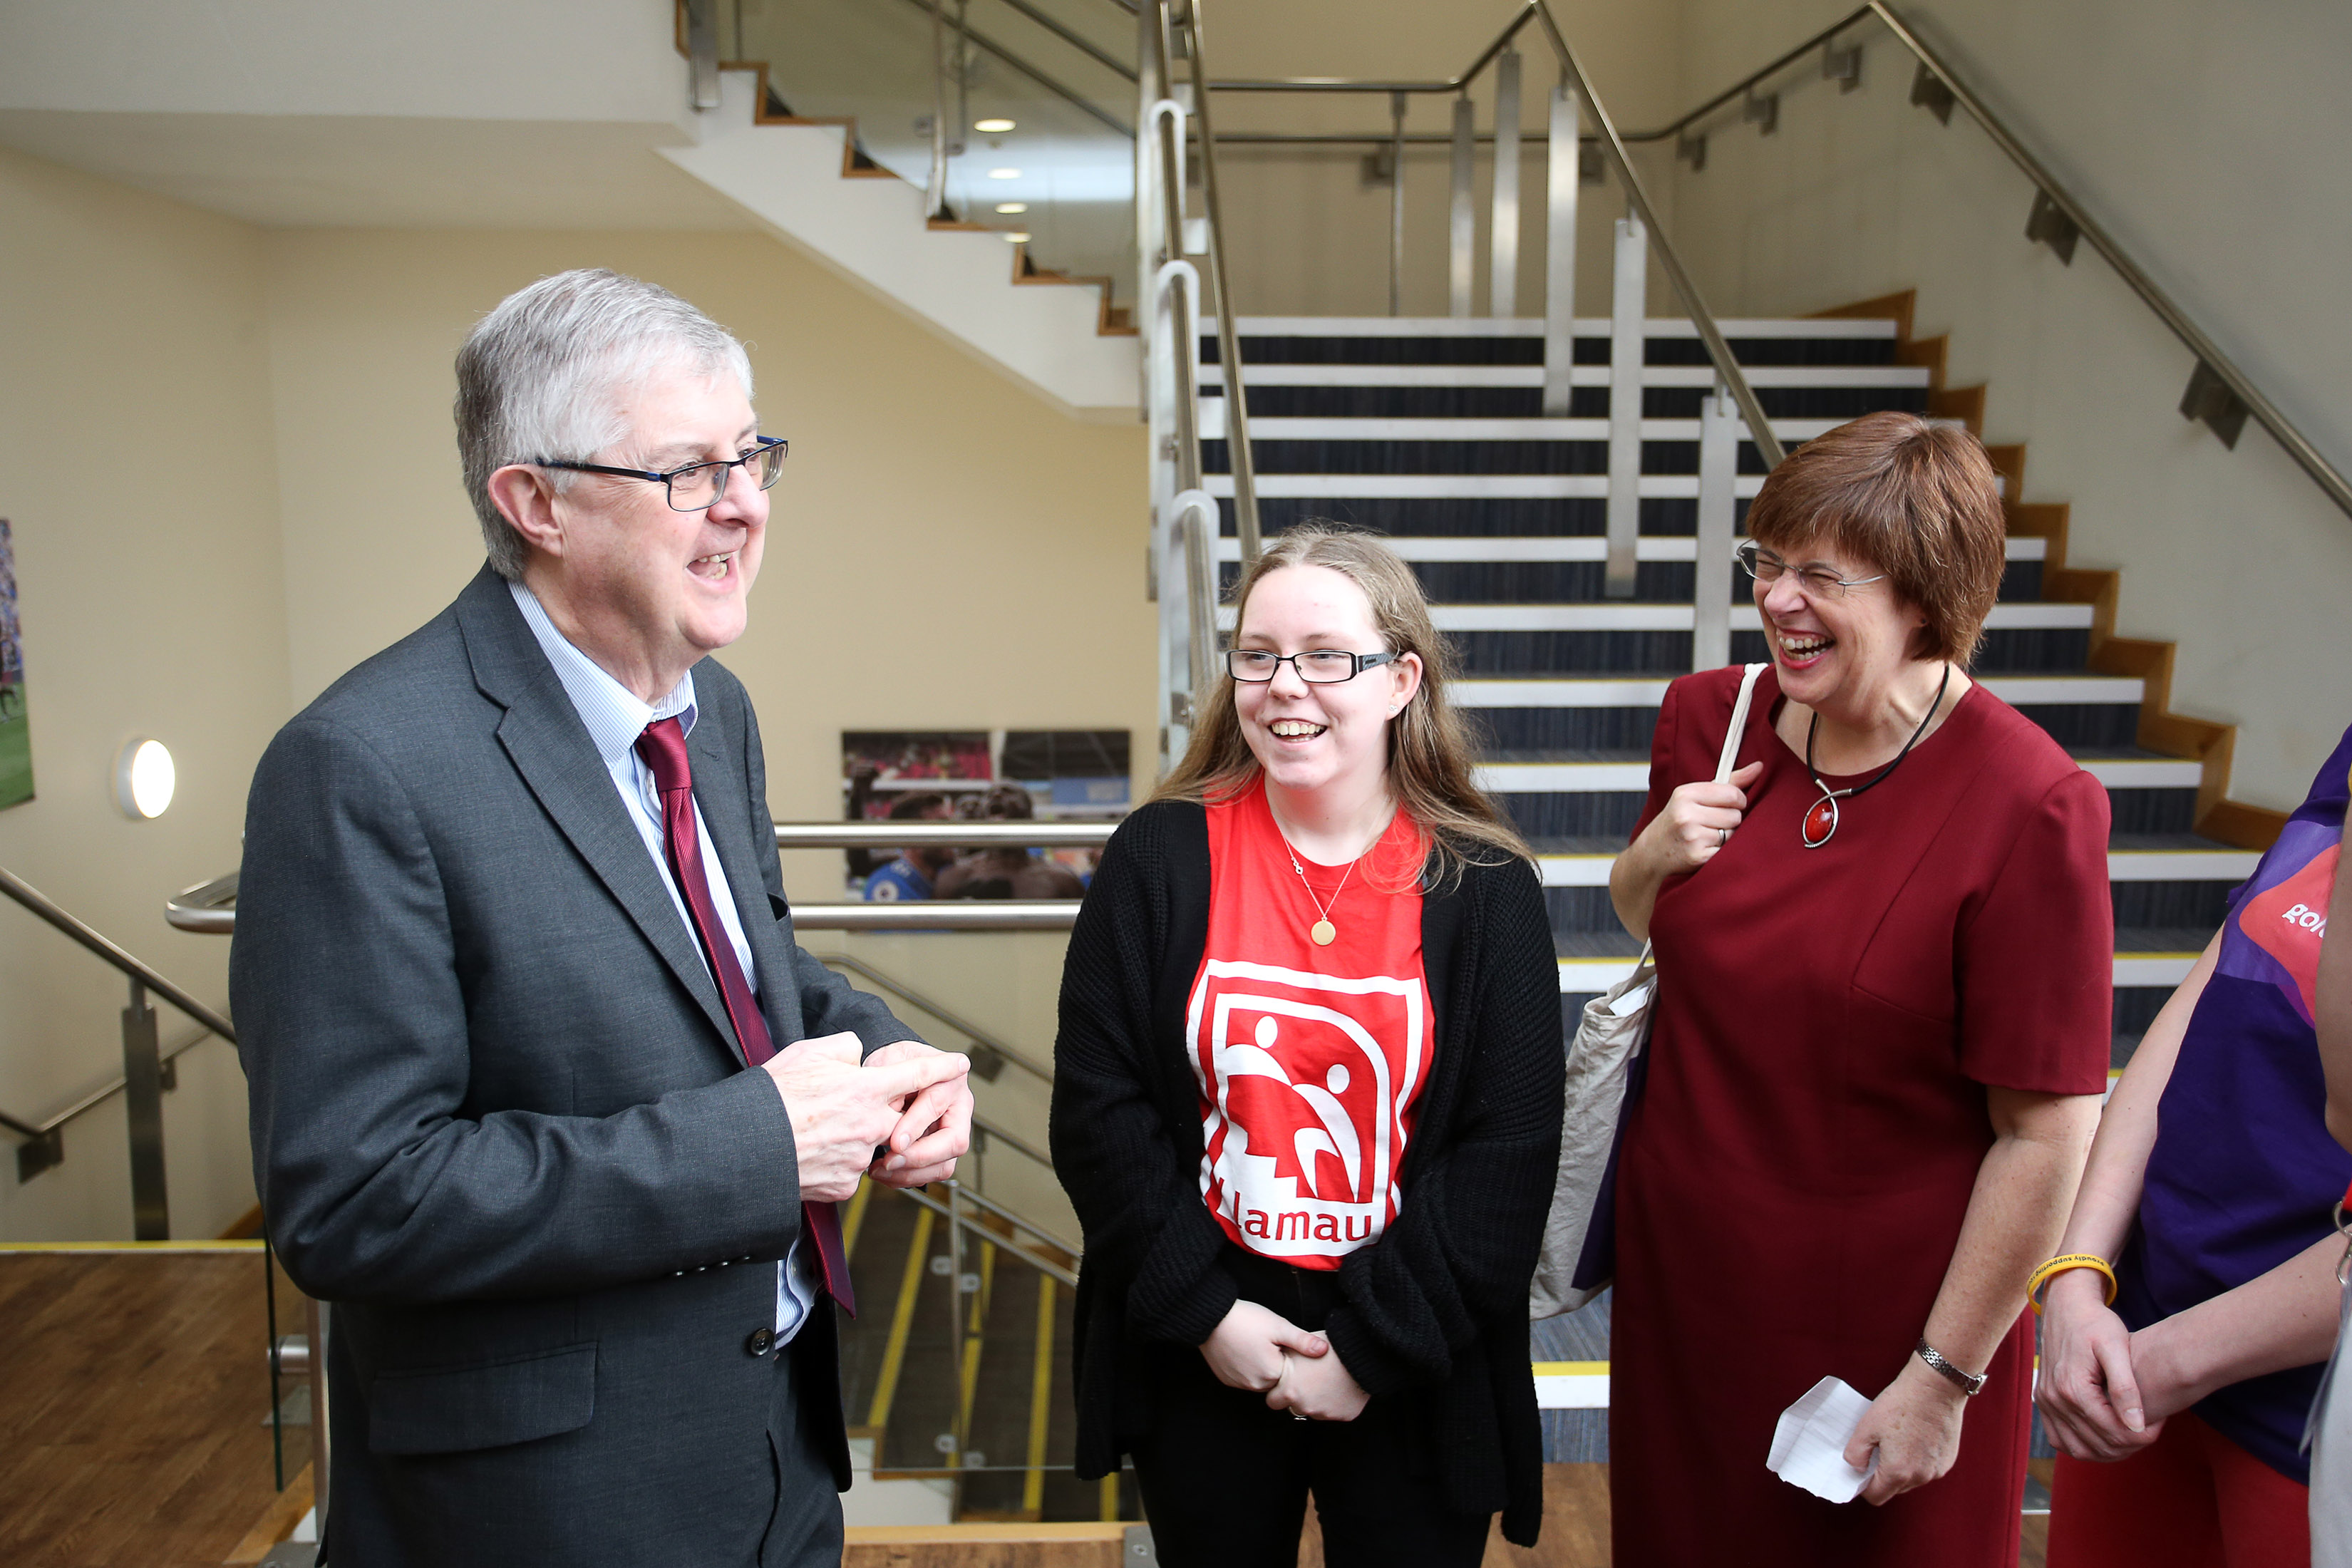 First Minister Mark Drakeford, WCVA Chief Executive Ruth Marks and a young woman stand smiling in front of some stairs